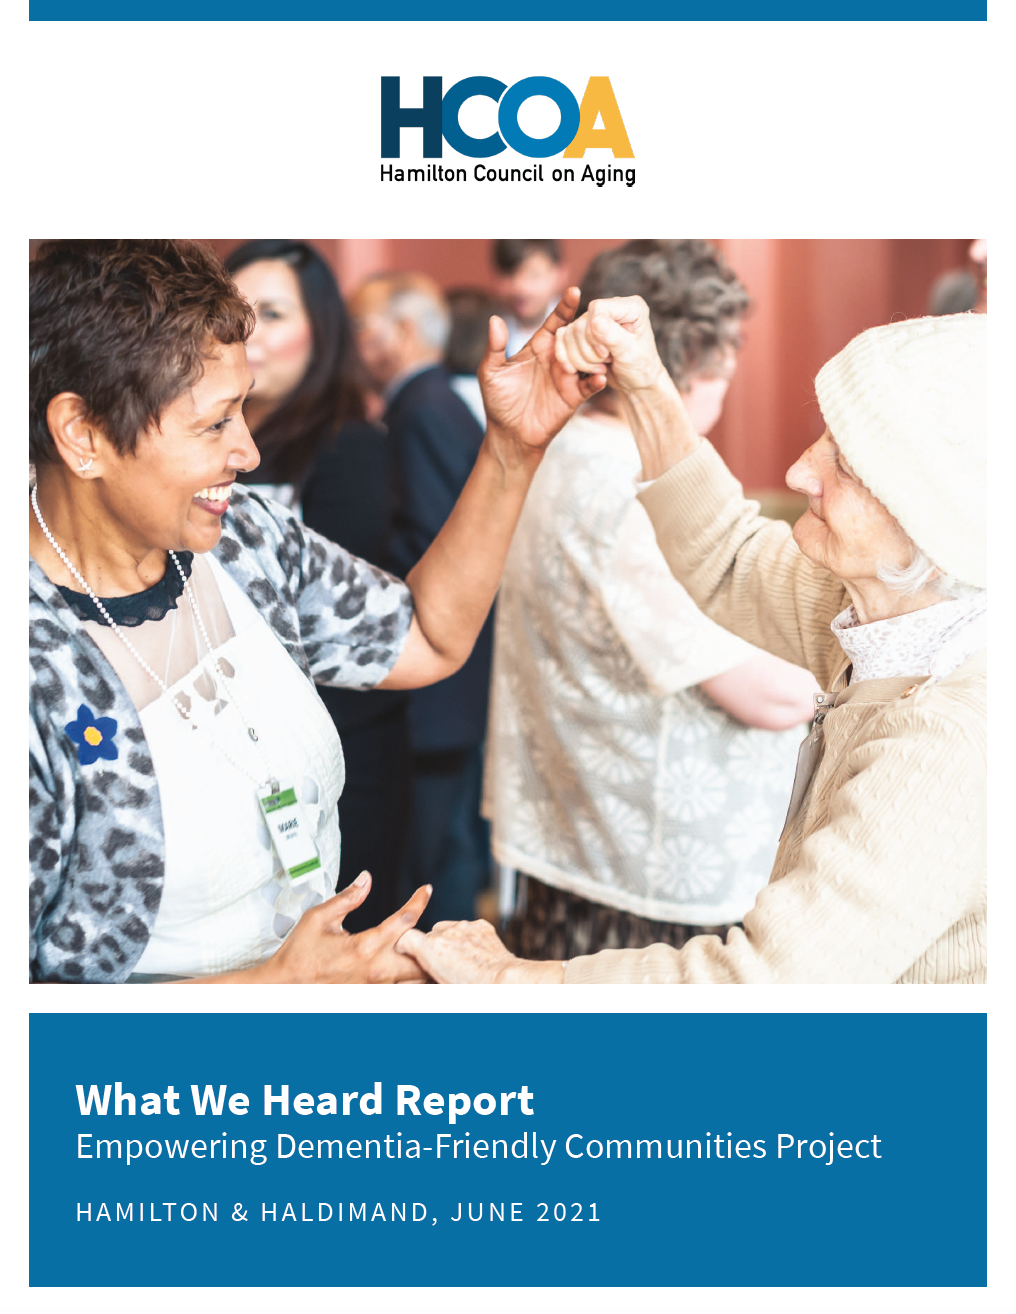 The cover of the What We Heard report, with the HCOA logo and a picture of women dancing